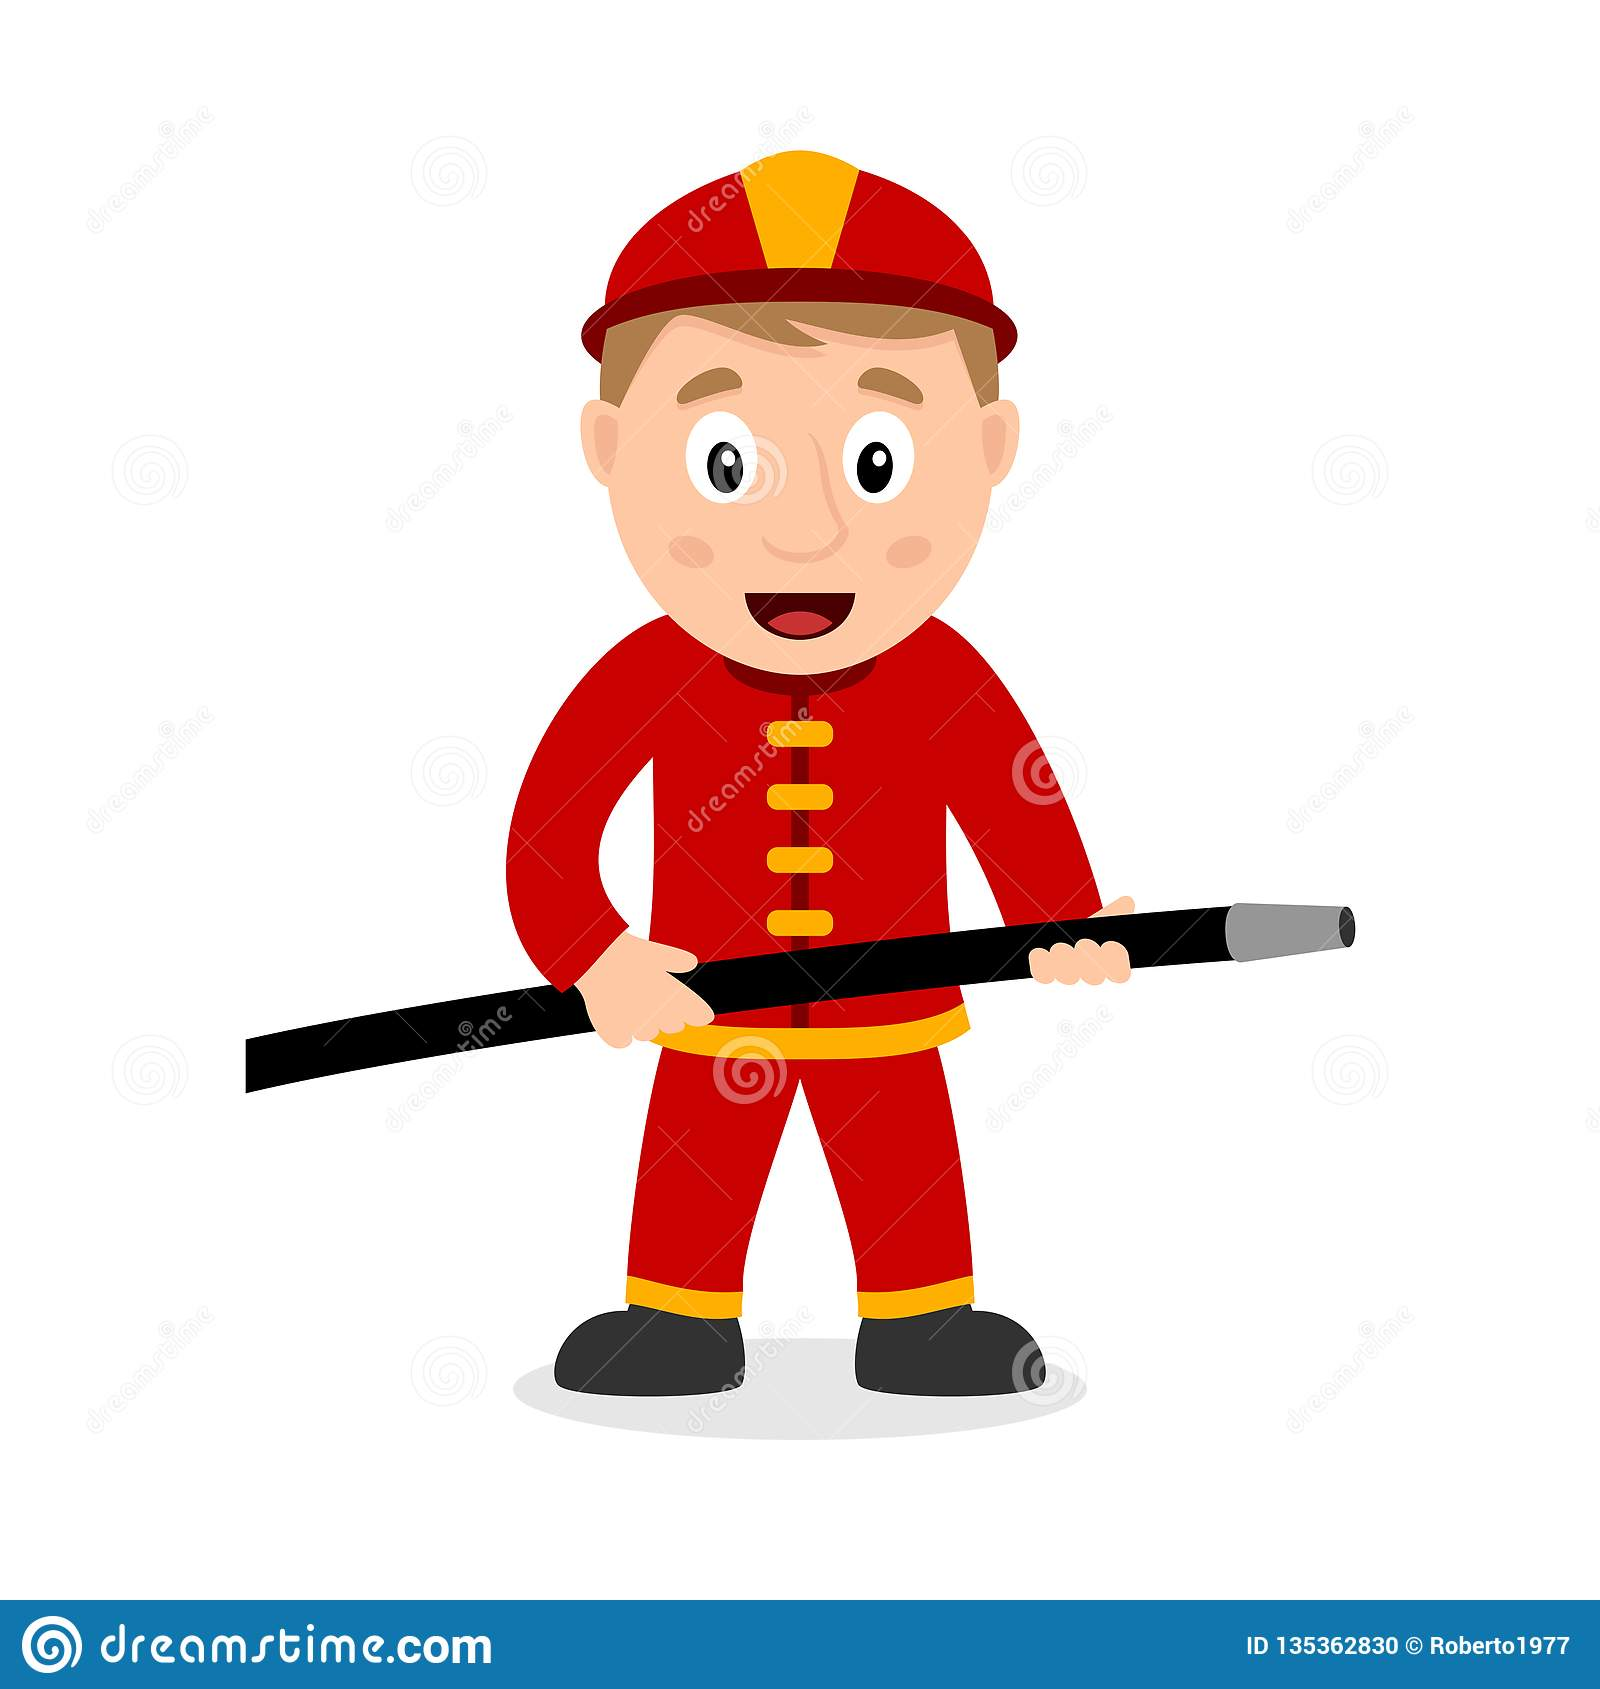 Fireman Cartoon Character With Hose Stock Vector Illustration Of Drawing Cute 135362830